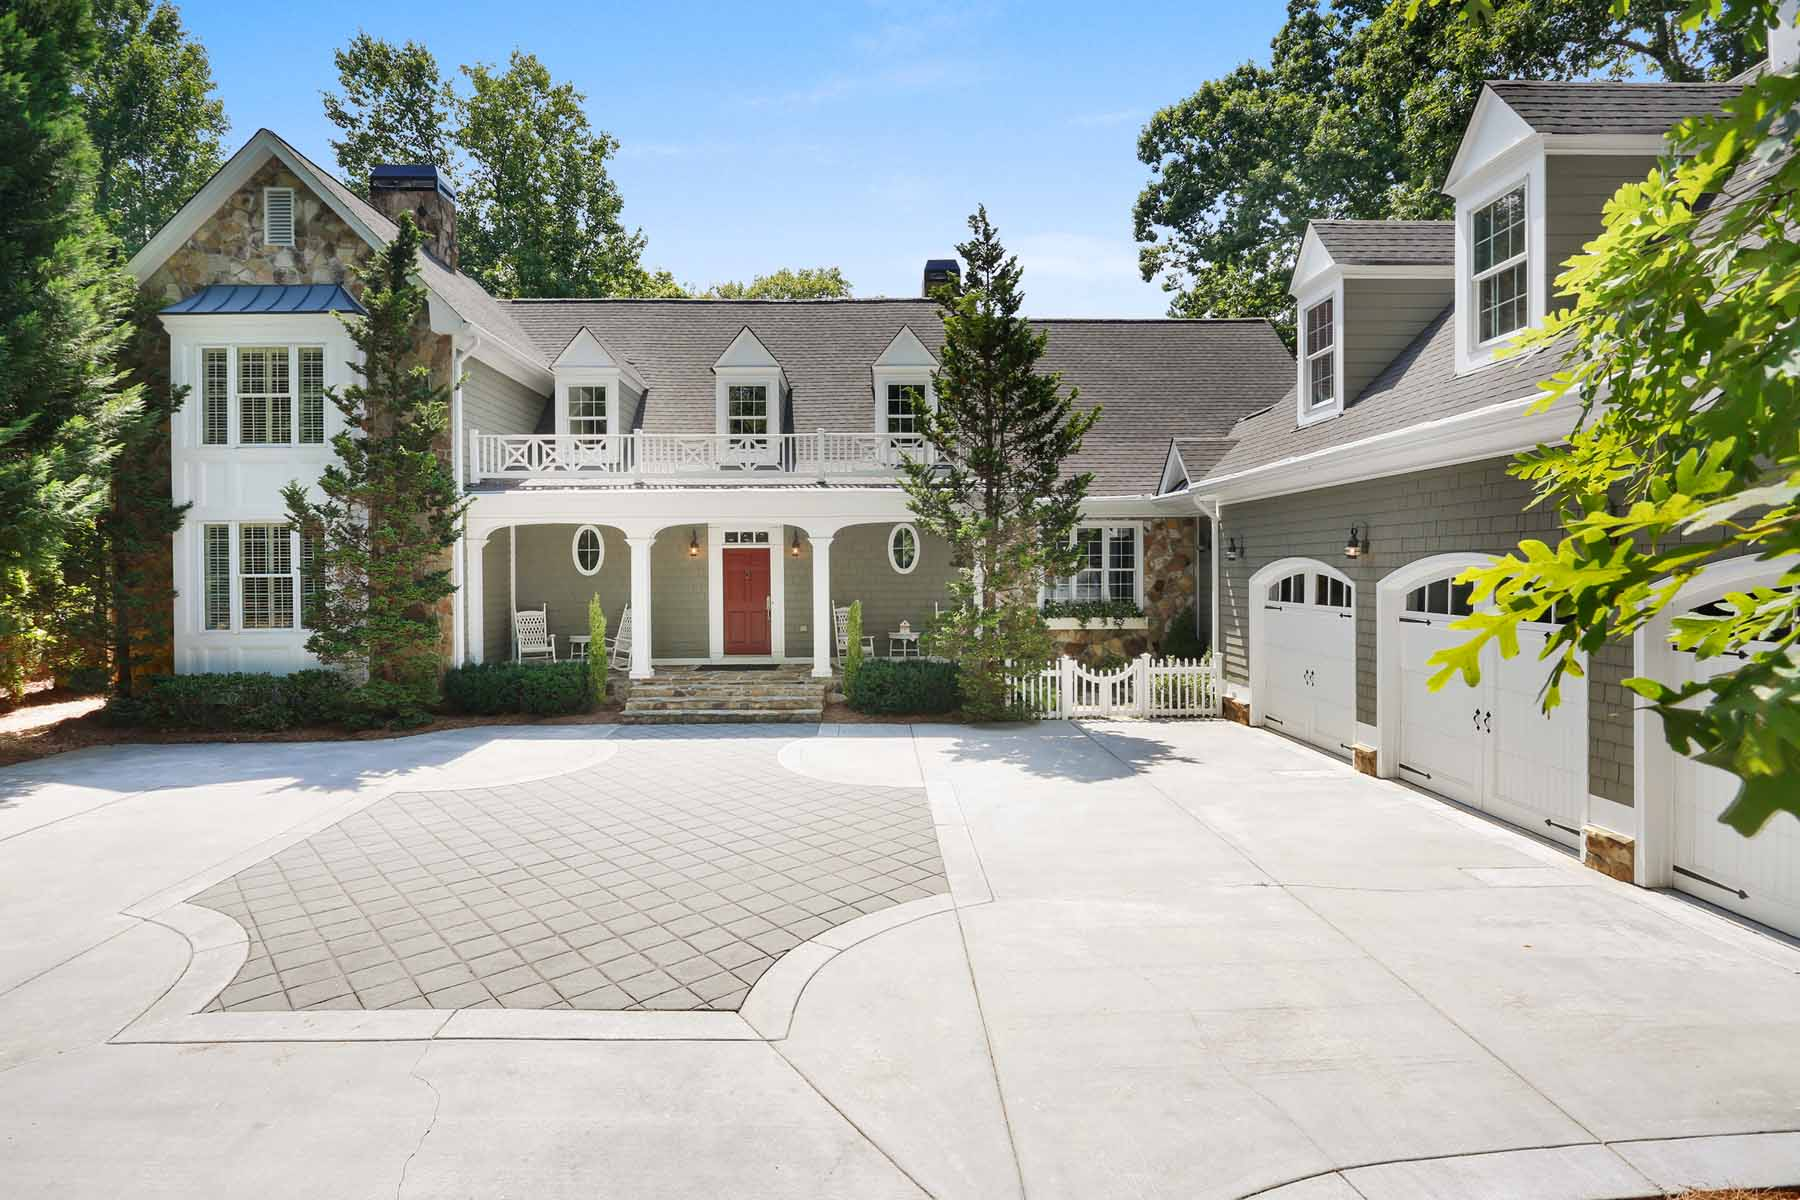 Moradia para Venda às Historical, New England Inspired Home on Acre Lot Fronting Chattahoochee River 1230 River Laurel Drive Suwanee, Geórgia, 30024 Estados Unidos